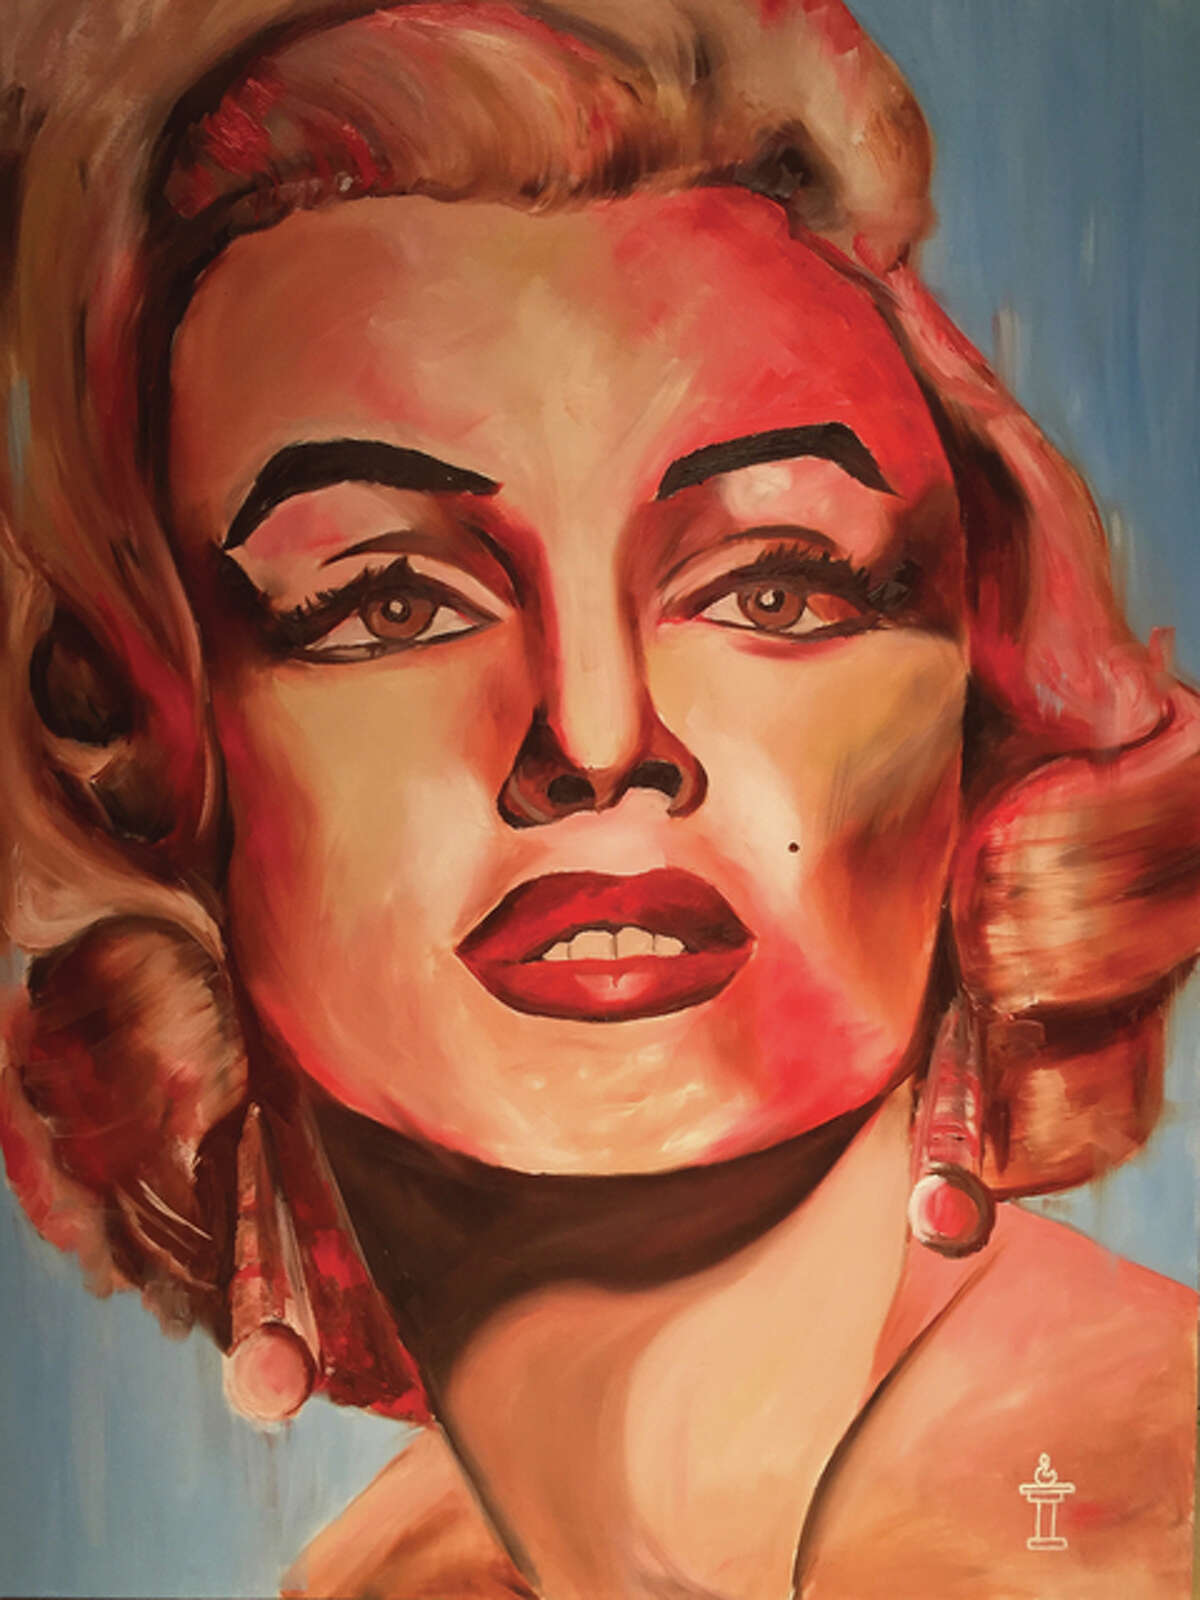 Artist Jake Bishop's interpretations of Hollywood icon Marilyn Monroe and the late actor Robin Williams, respectively.